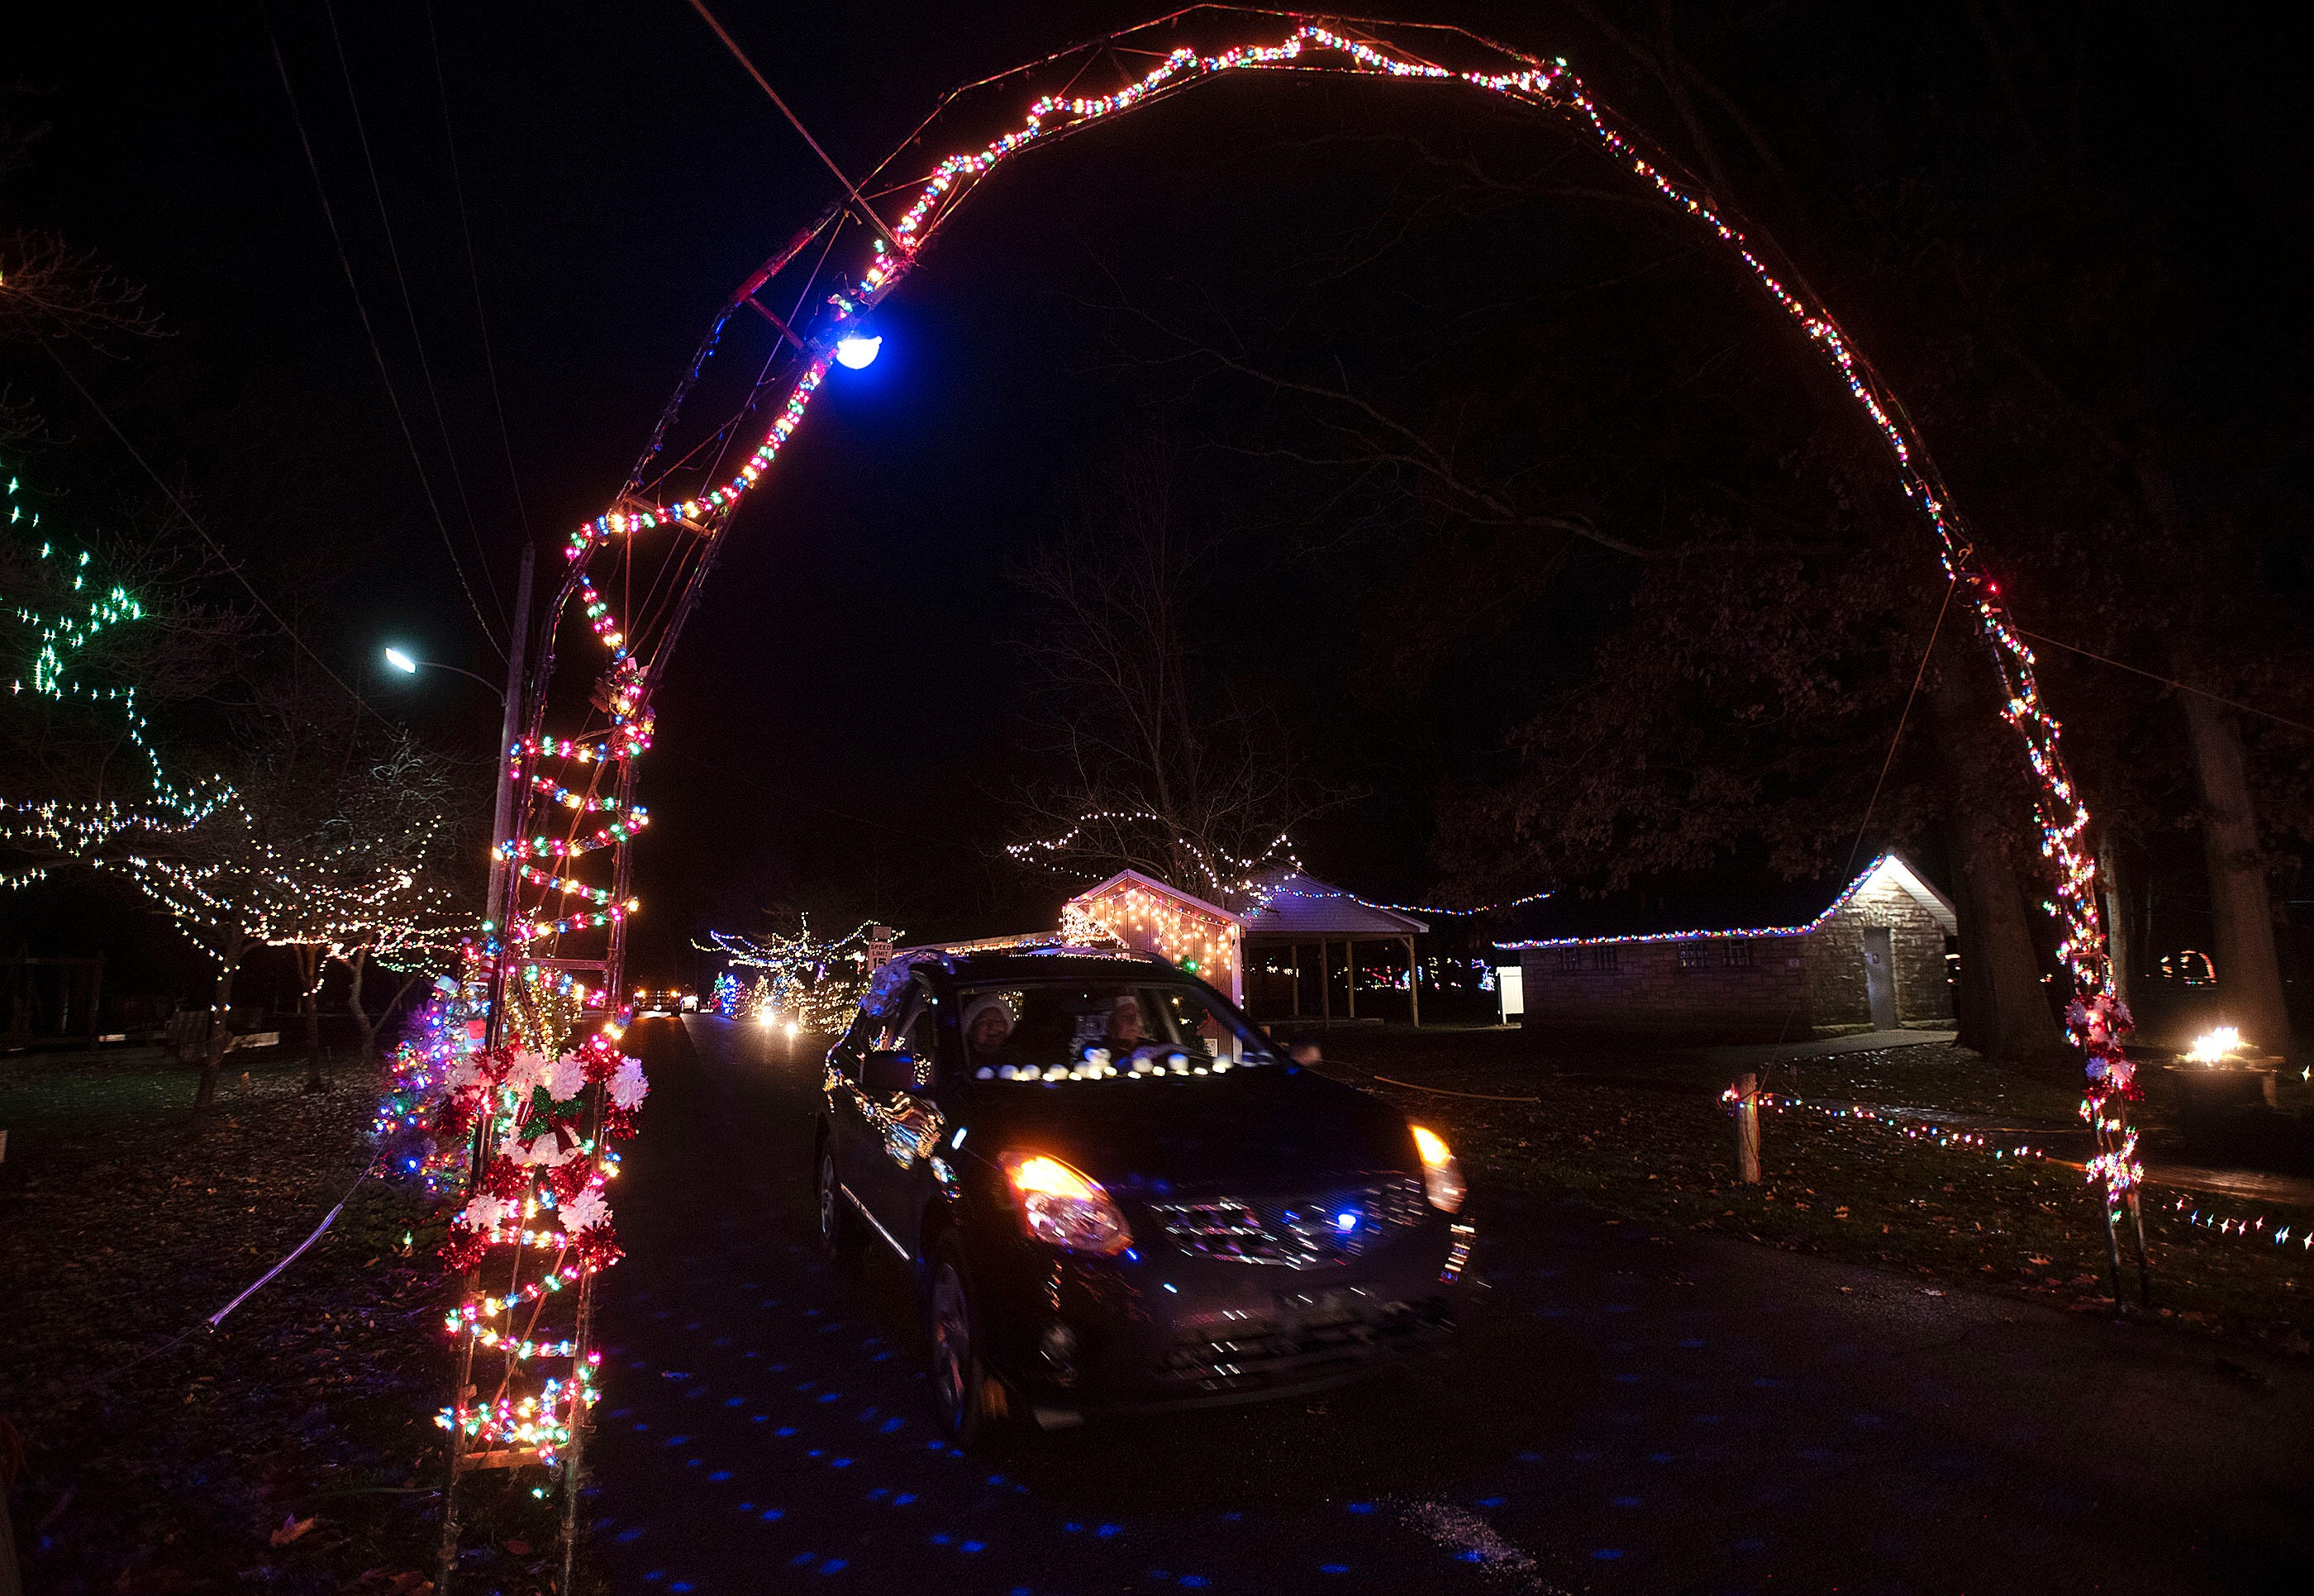 Ellwood City Christmas Parade 2021 Merry Bright Ellwood City S Ewing Park Features Holiday Light Display